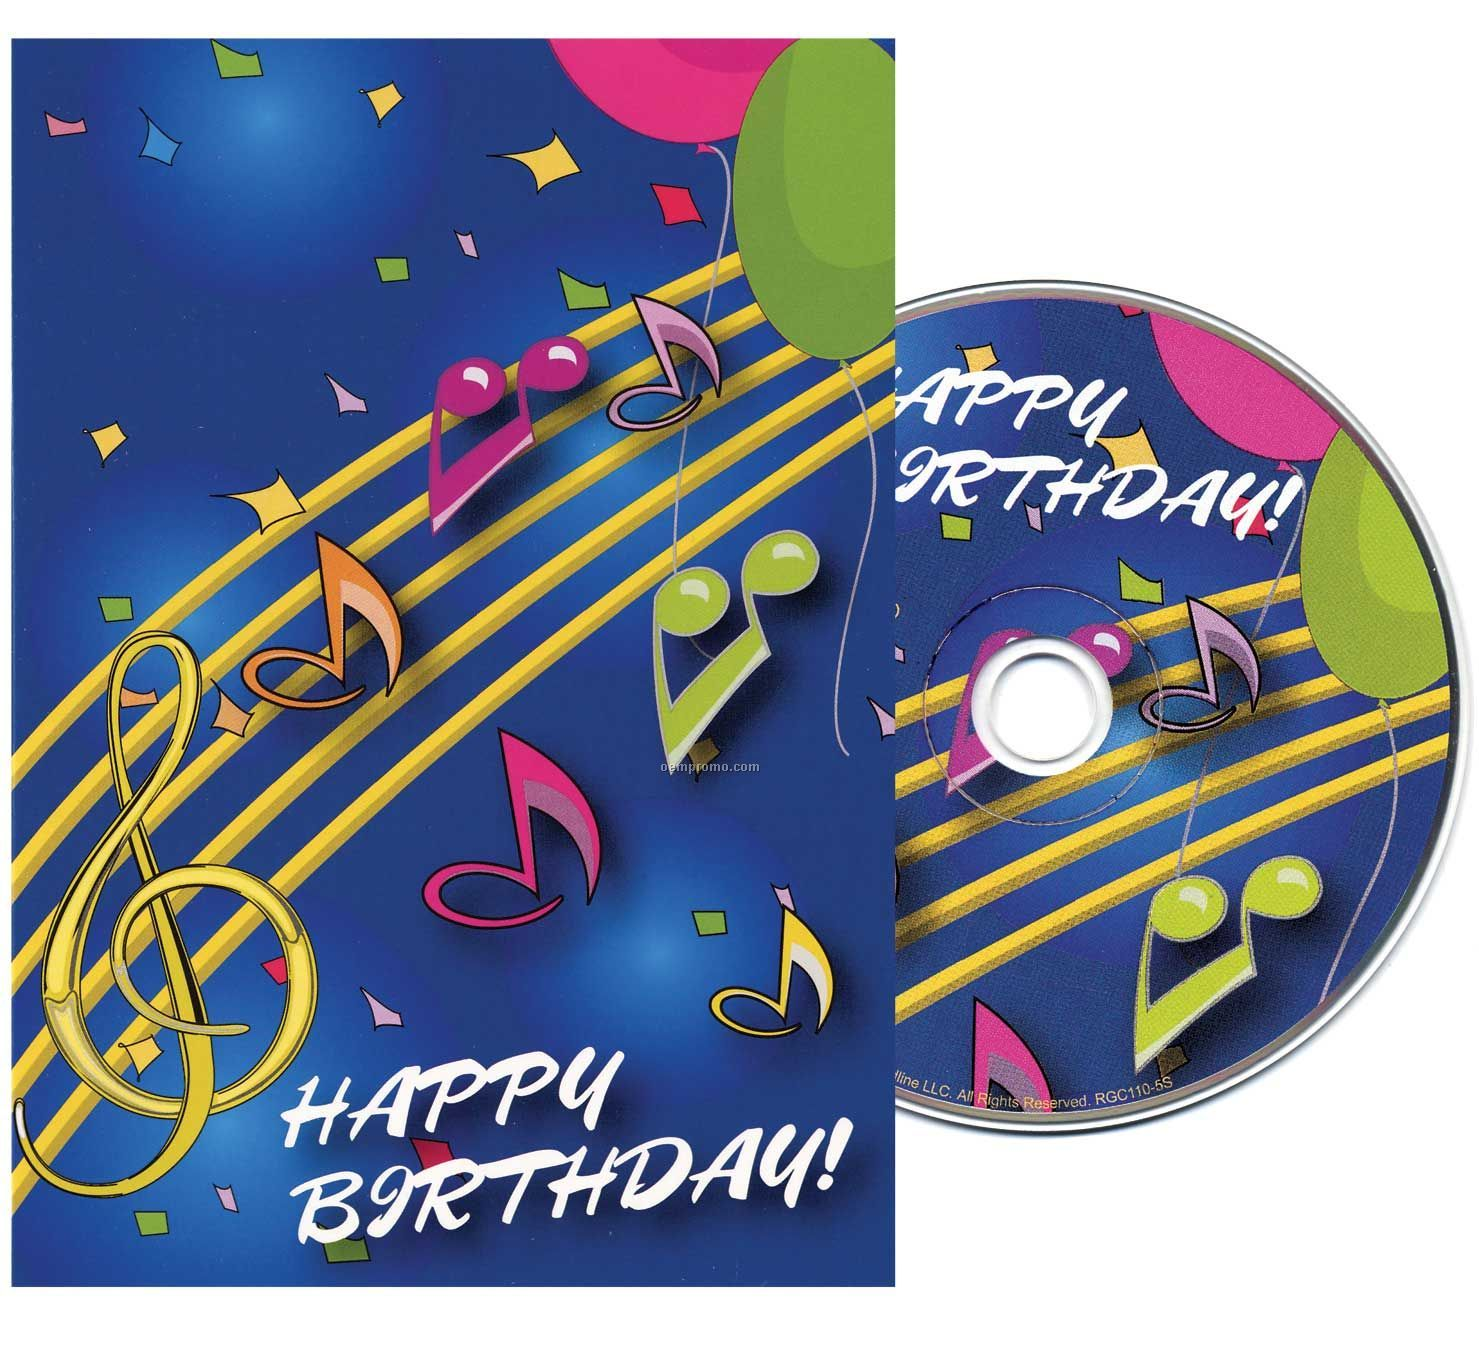 Elegant music birthday cards graphics eccleshallfc music notes birthday greeting card with matching cd china bookmarktalkfo